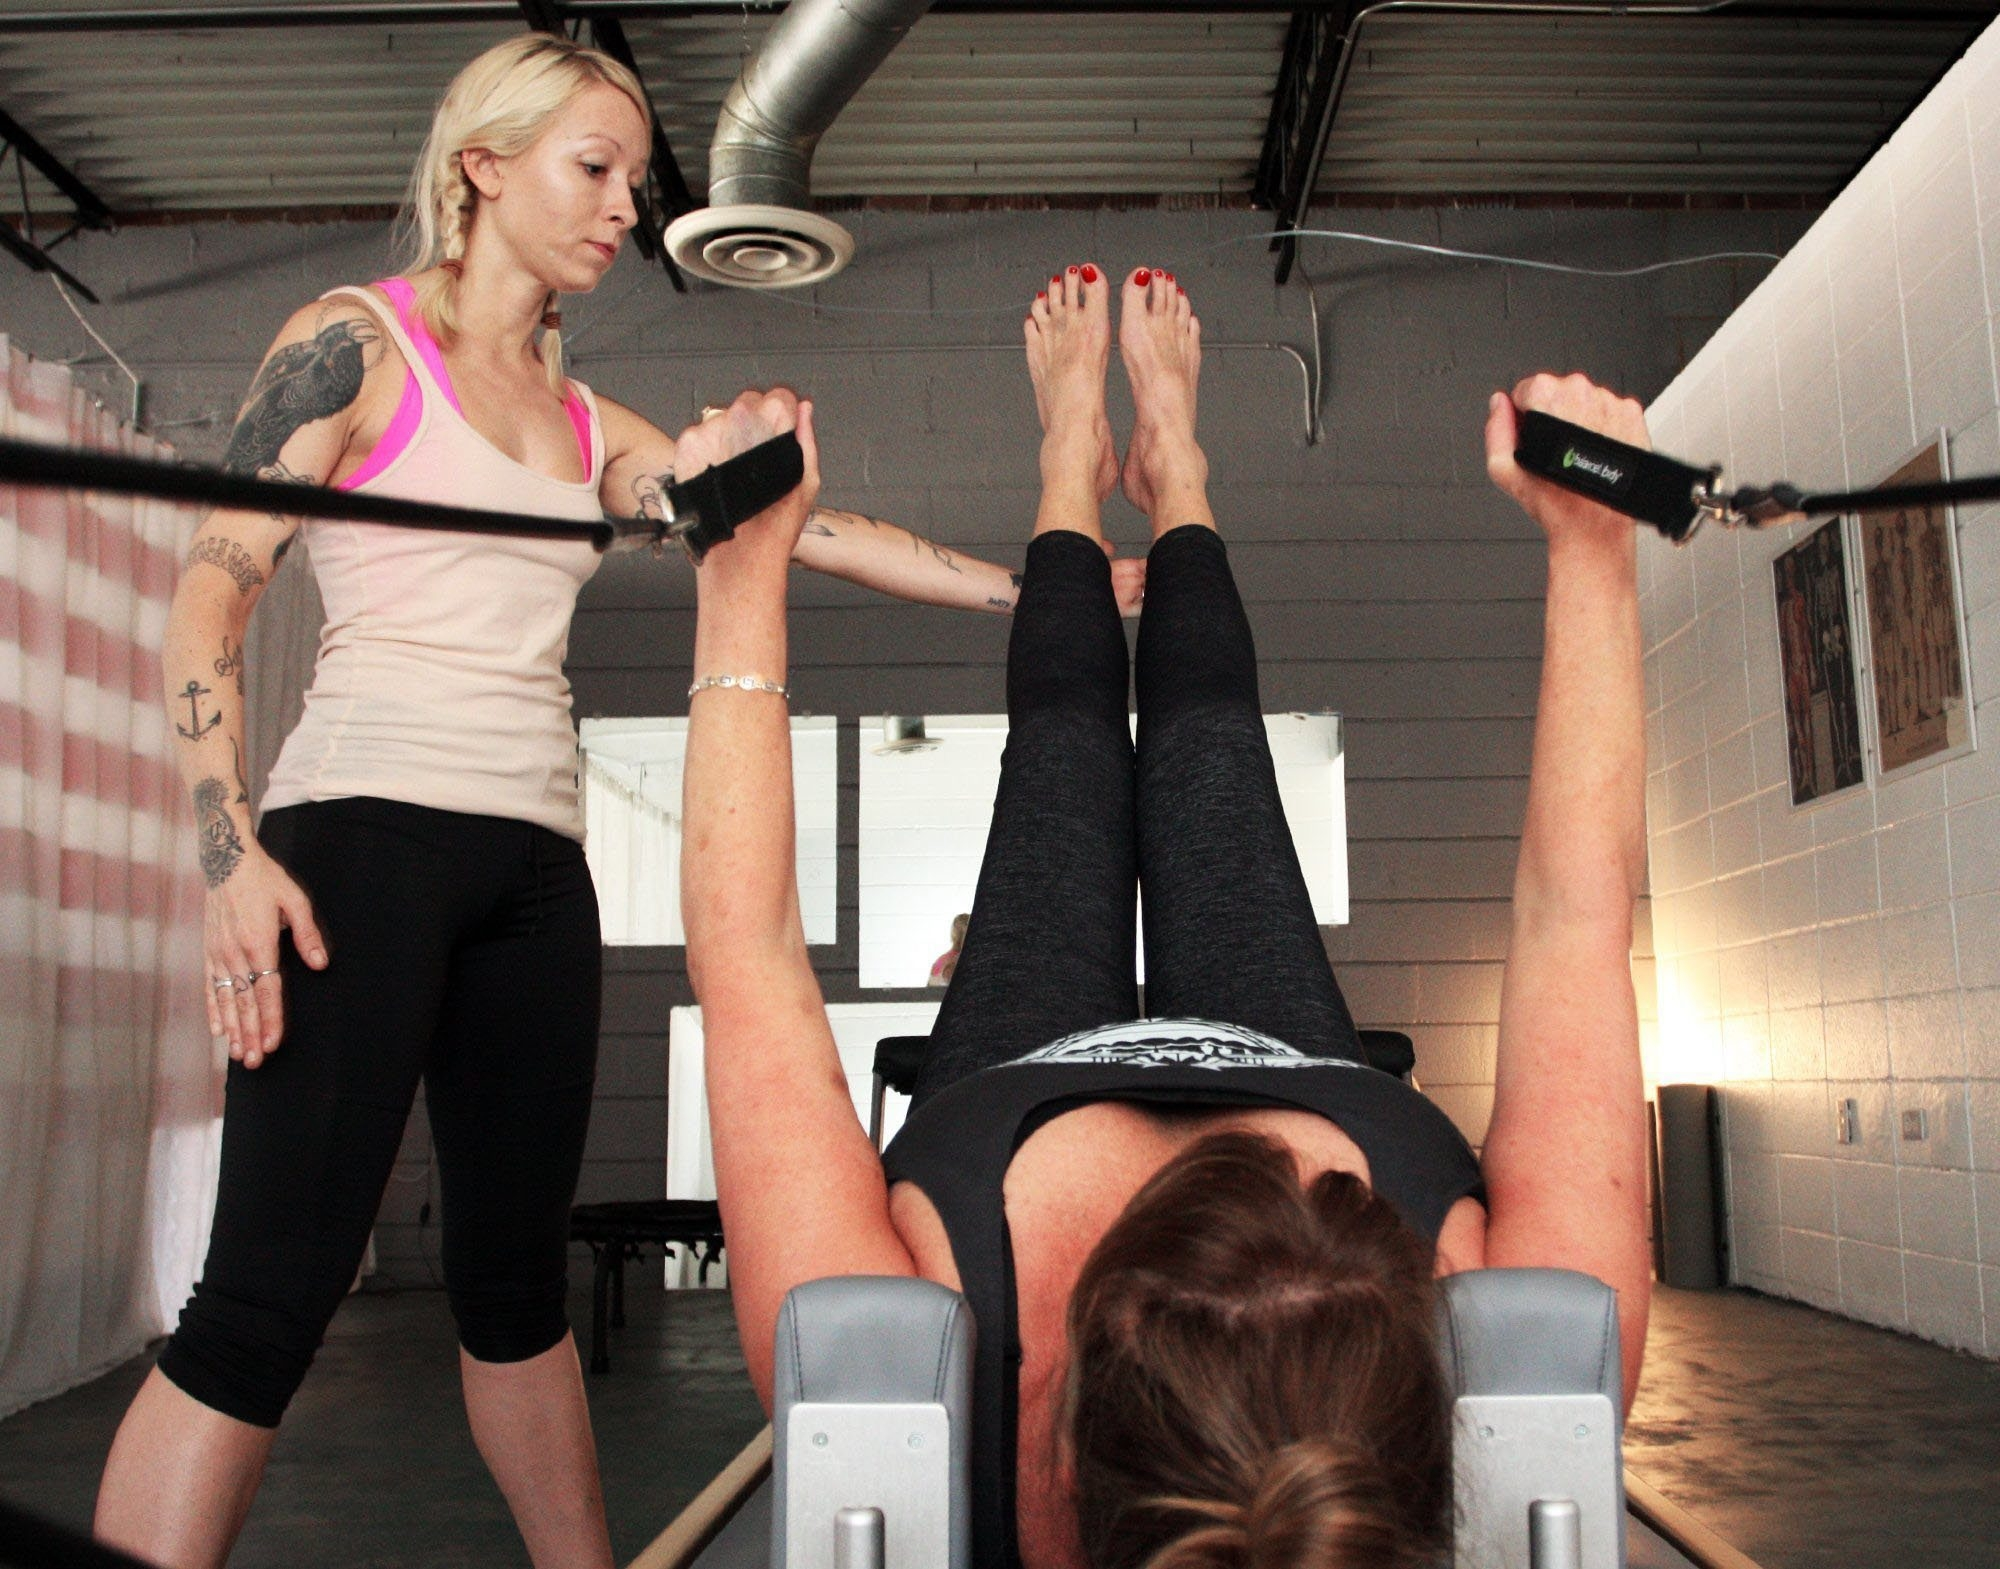 Freelance personal trainer Stella Wingfield Cook, who is part of an expanding freelance economy, guides Marcia Brooks through a workout.